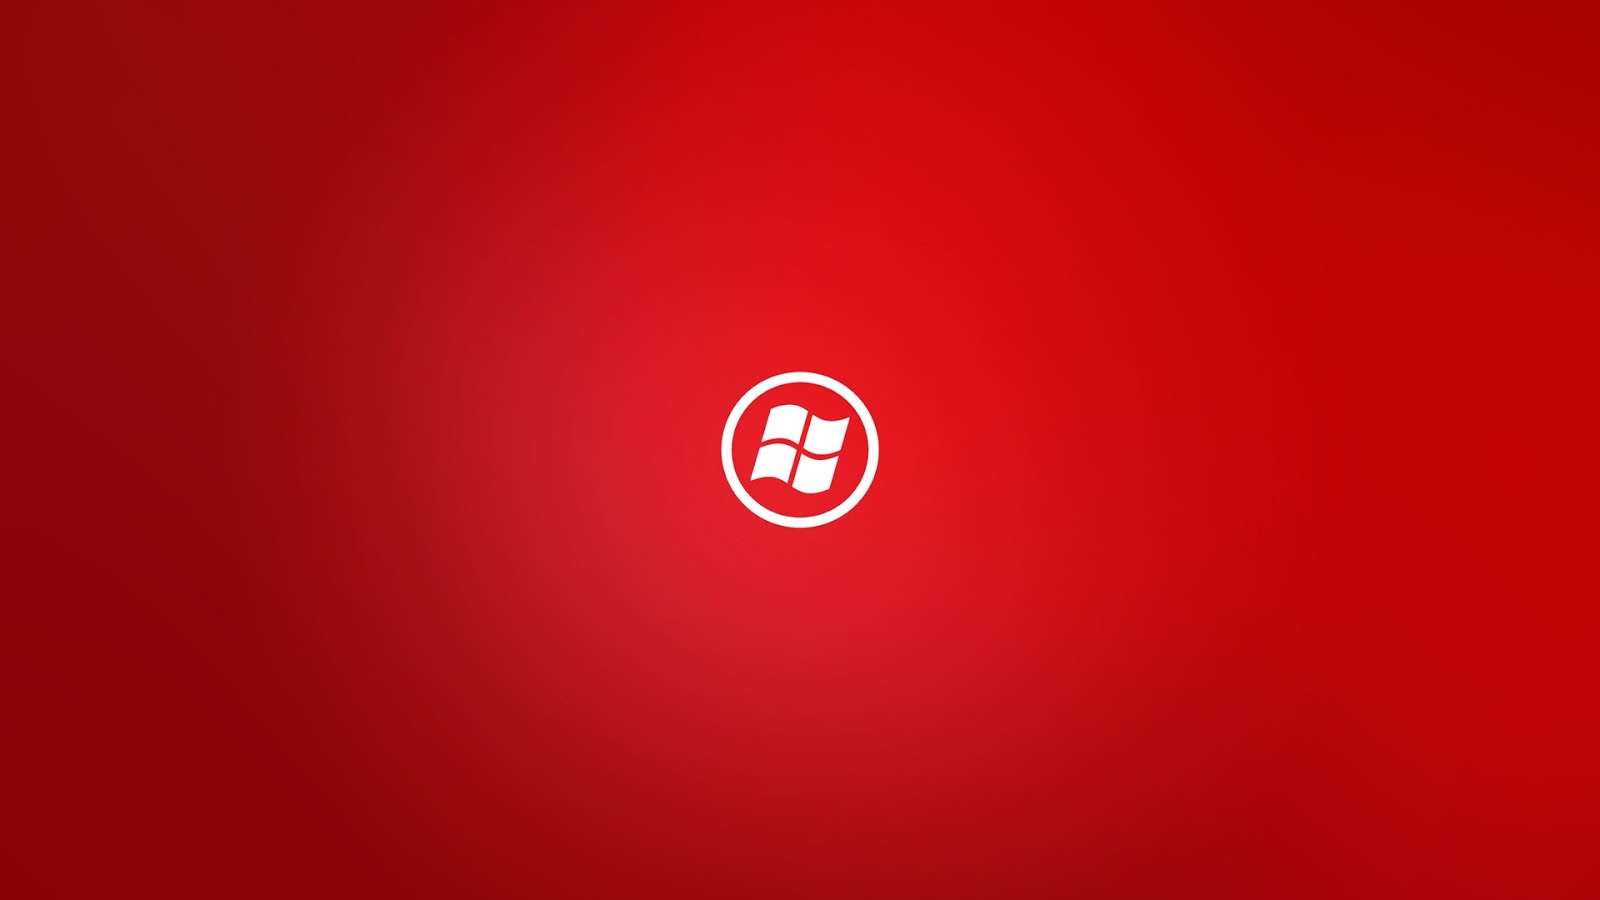 Top 10 most wanted windows 8 wallpapers 2013 cliccme for Best home wallpaper 2013